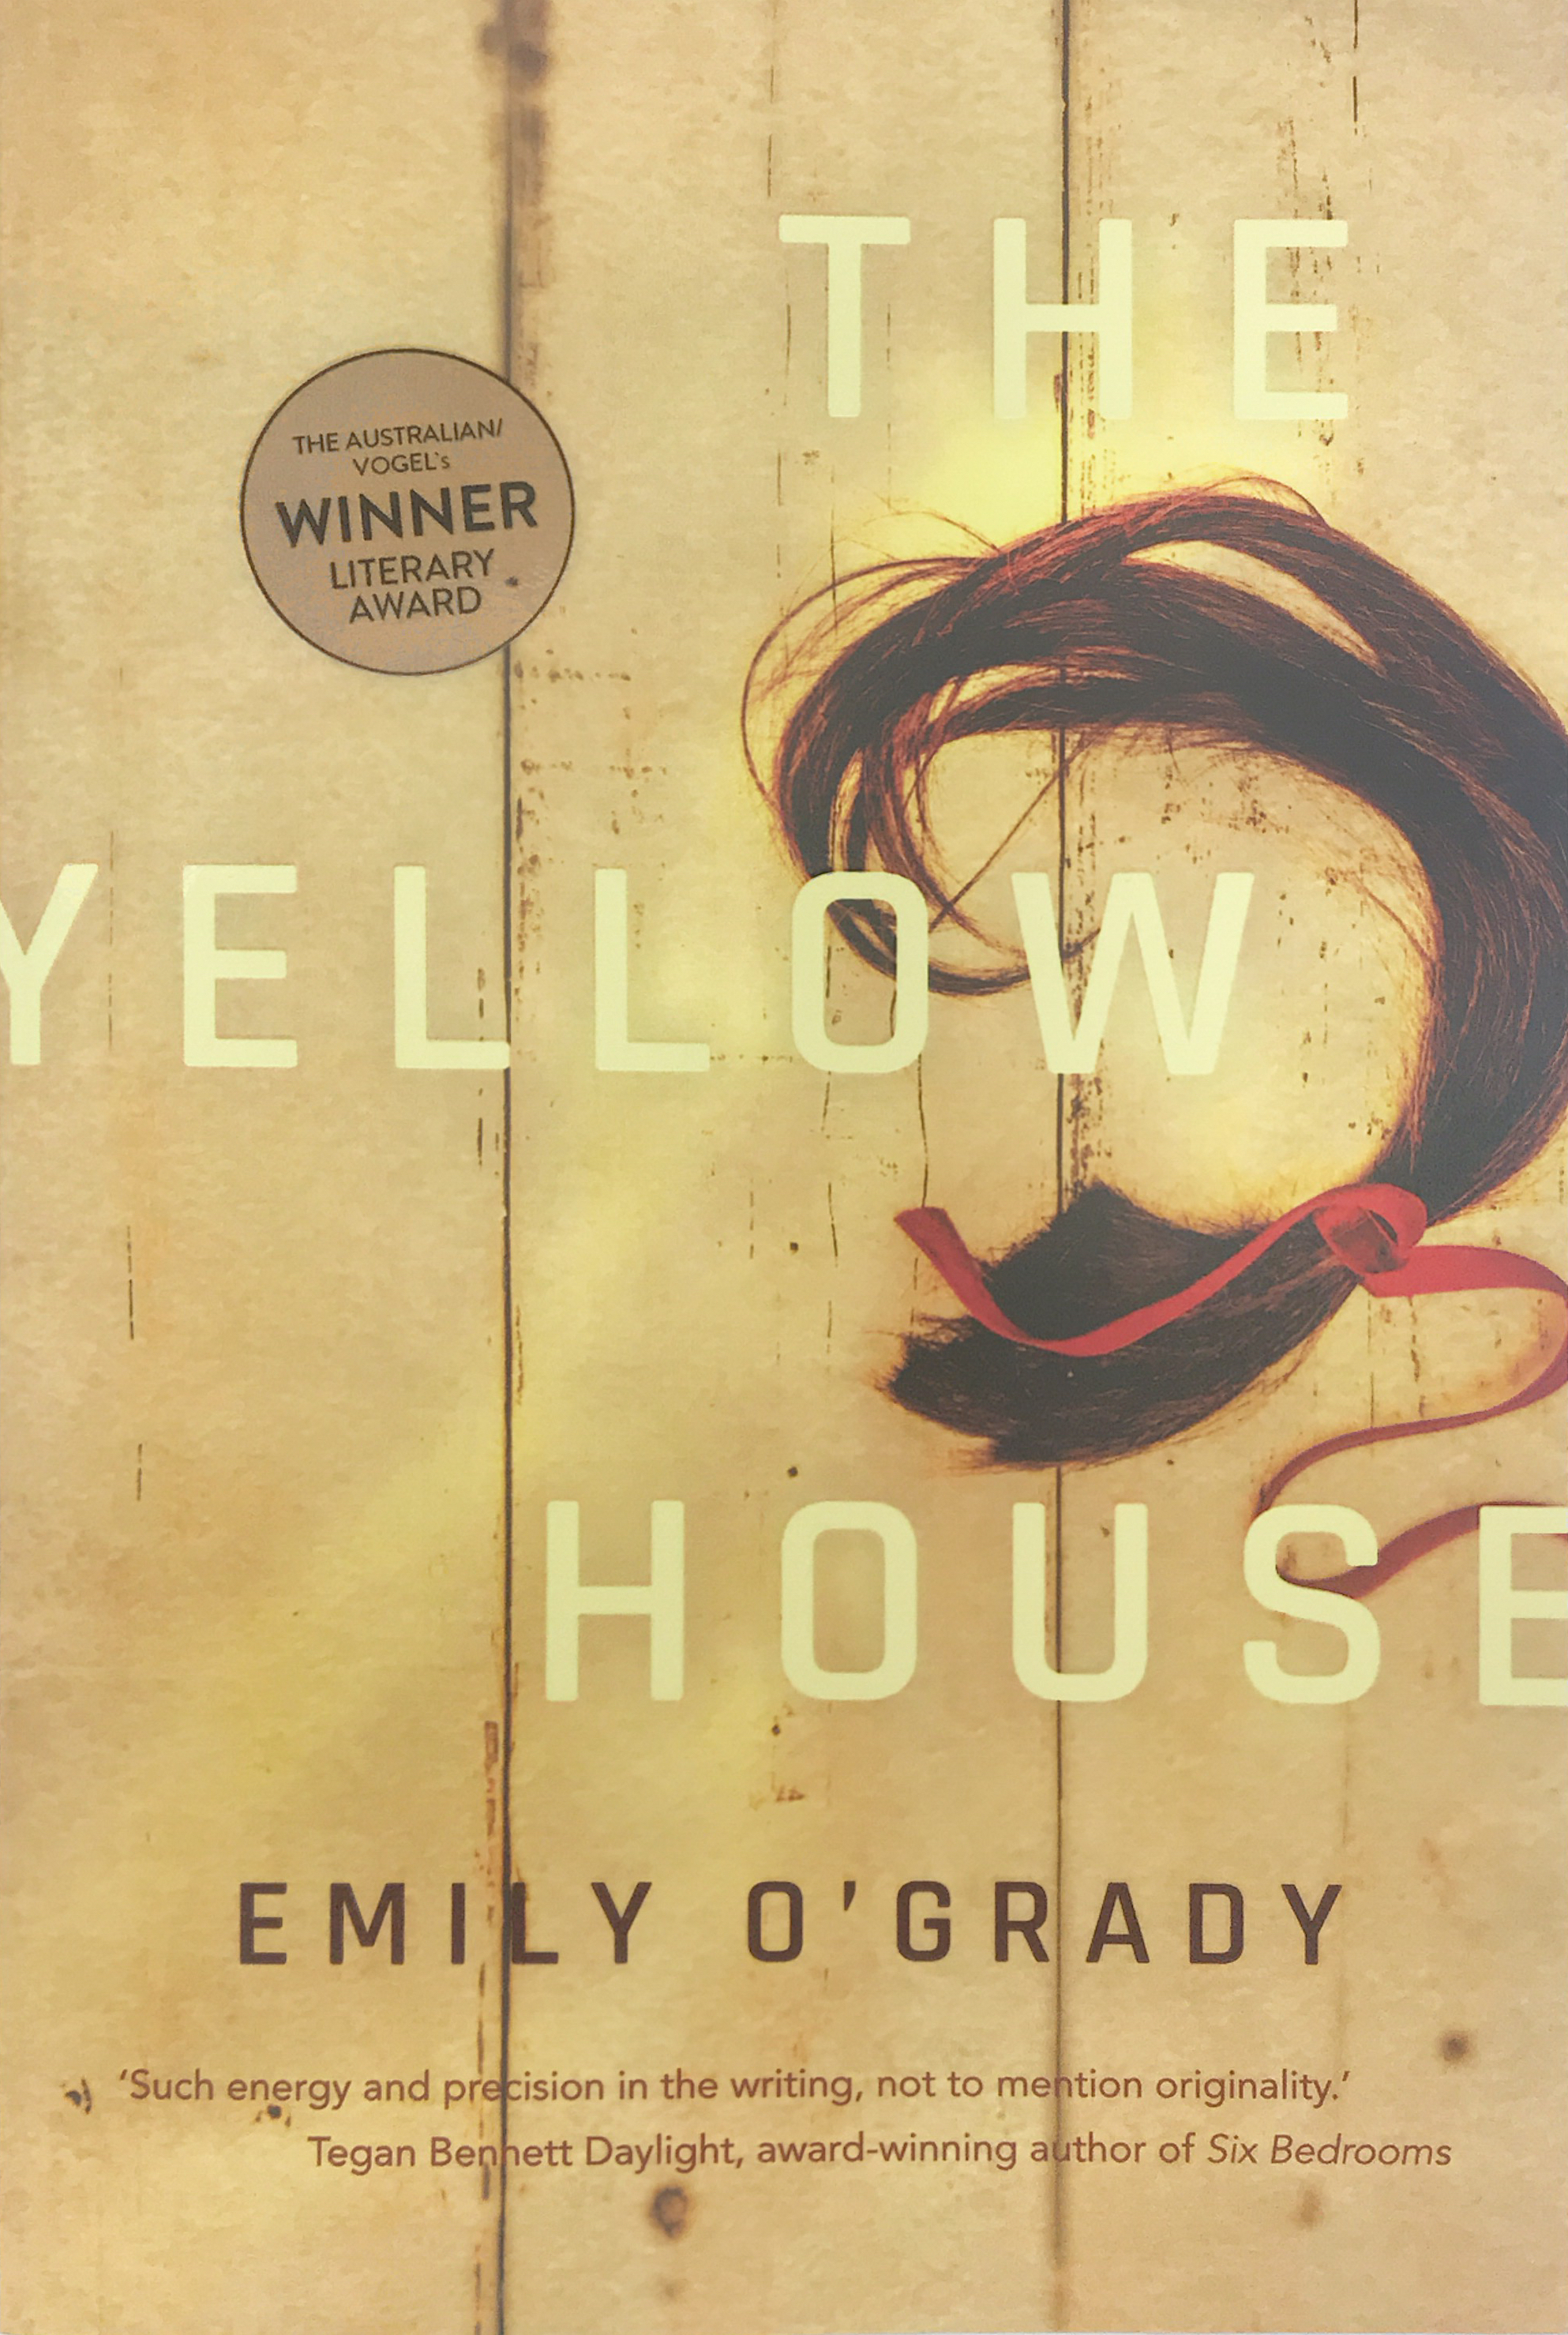 The Yellow Houseby Emily O'Grady